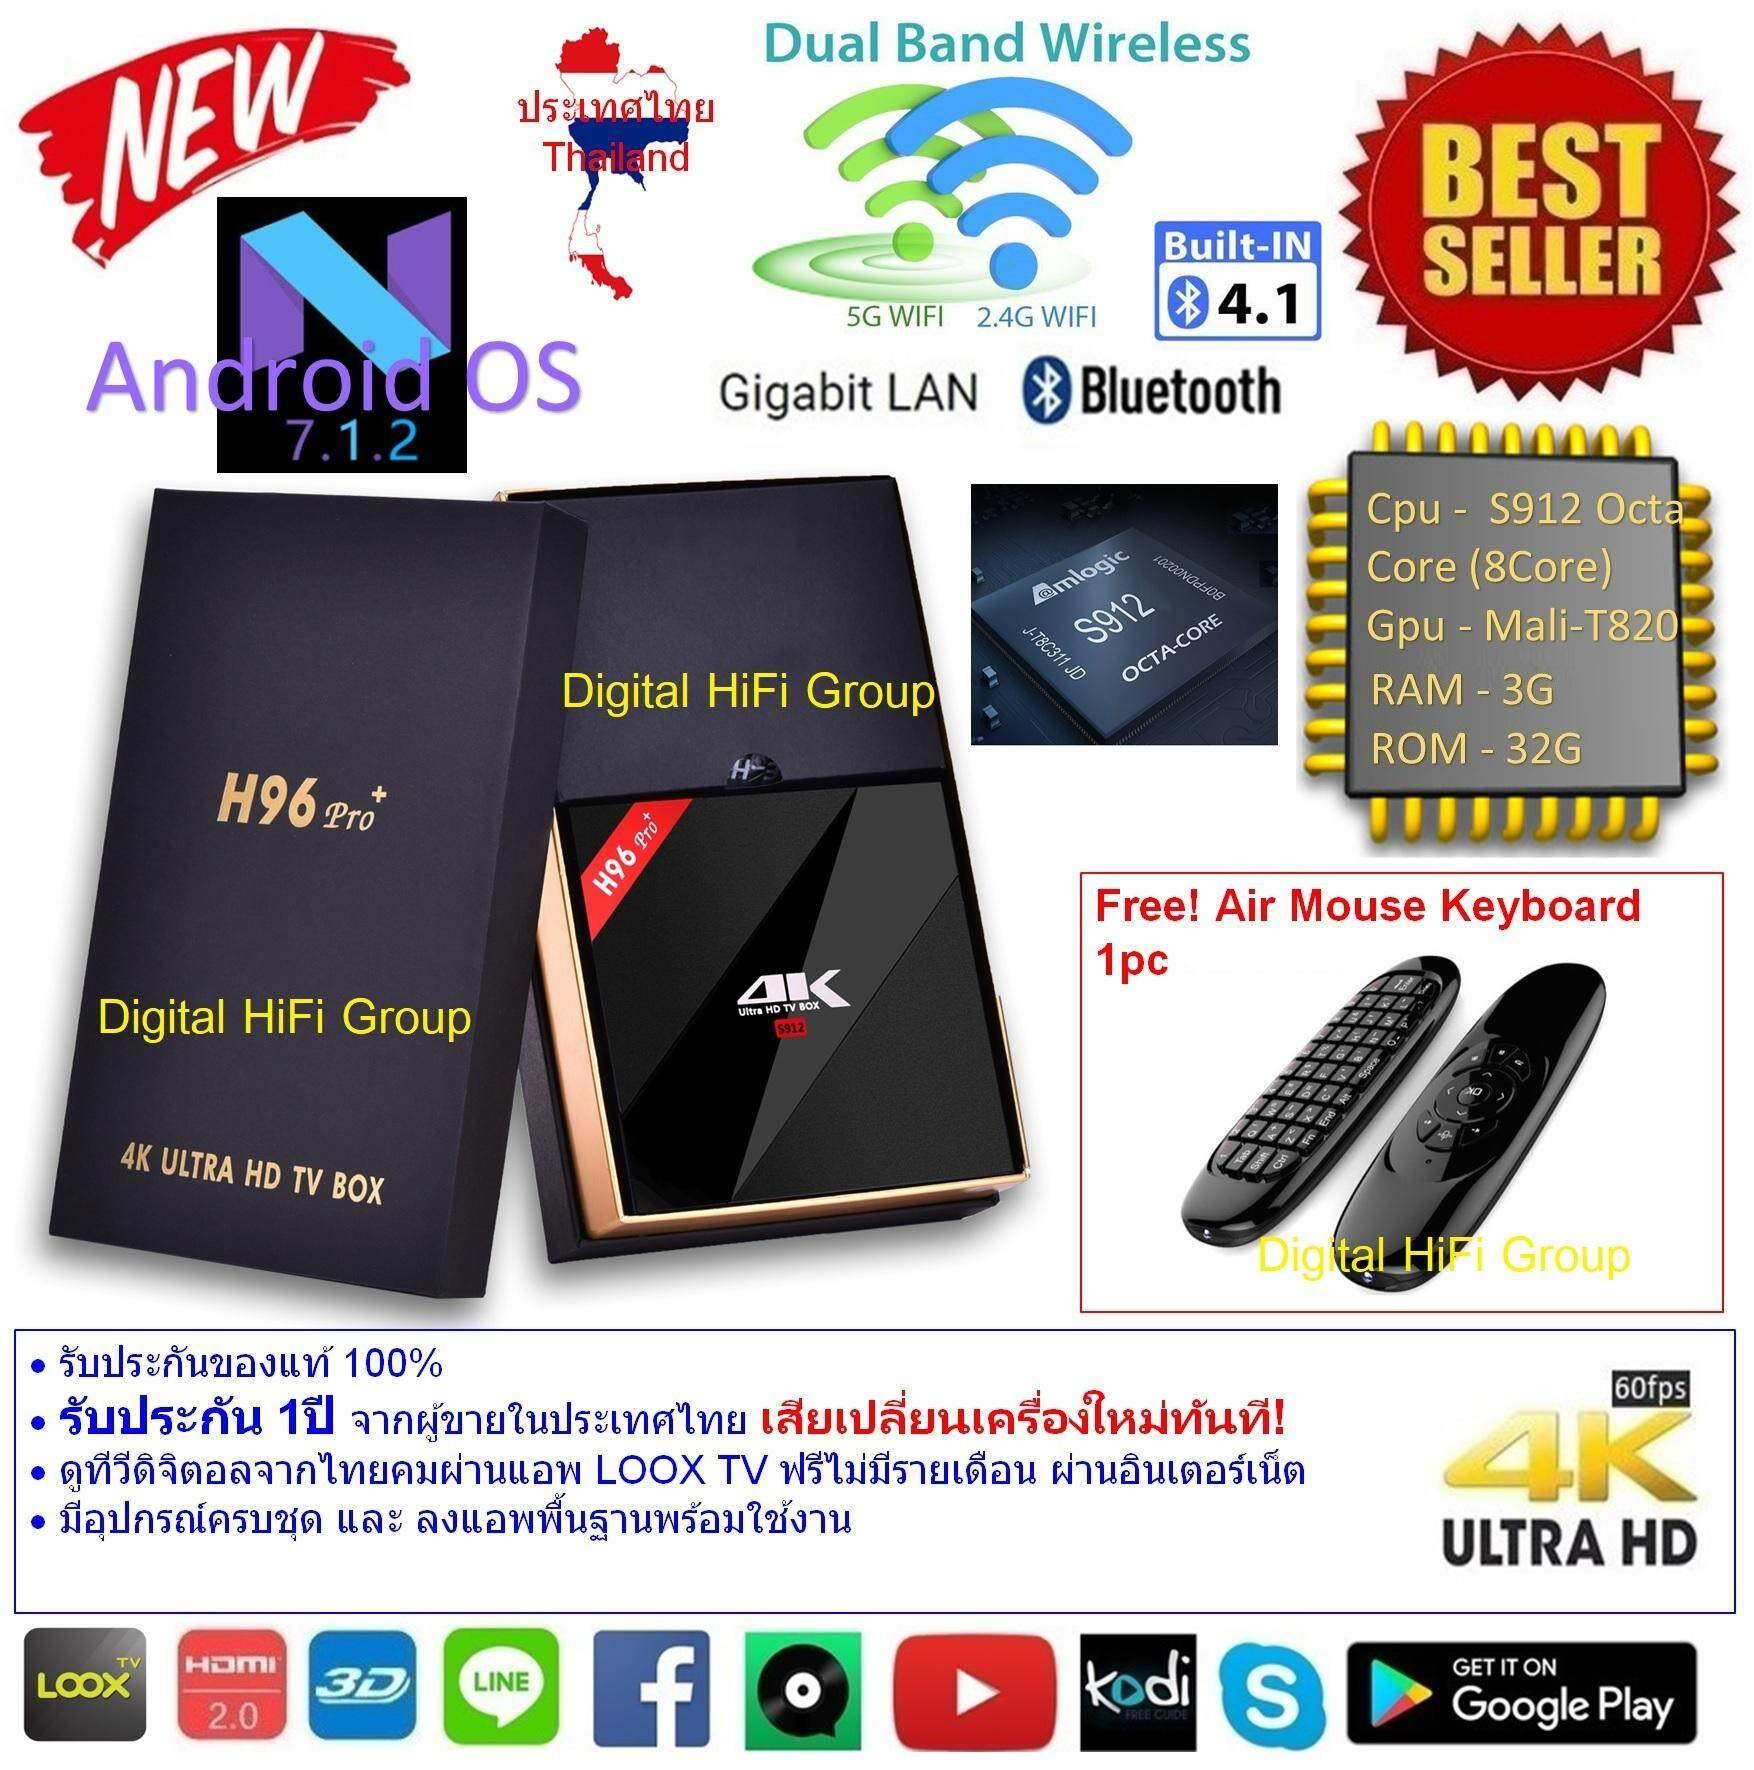 สกลนคร Android Smart TV Box H96 Pro+ Plus Octa Core Cpu S912 RAM 3G ROM 32G UHD 4K Android Nougat 7.1.2 แถมฟรี Air Mouse Keyboad C120